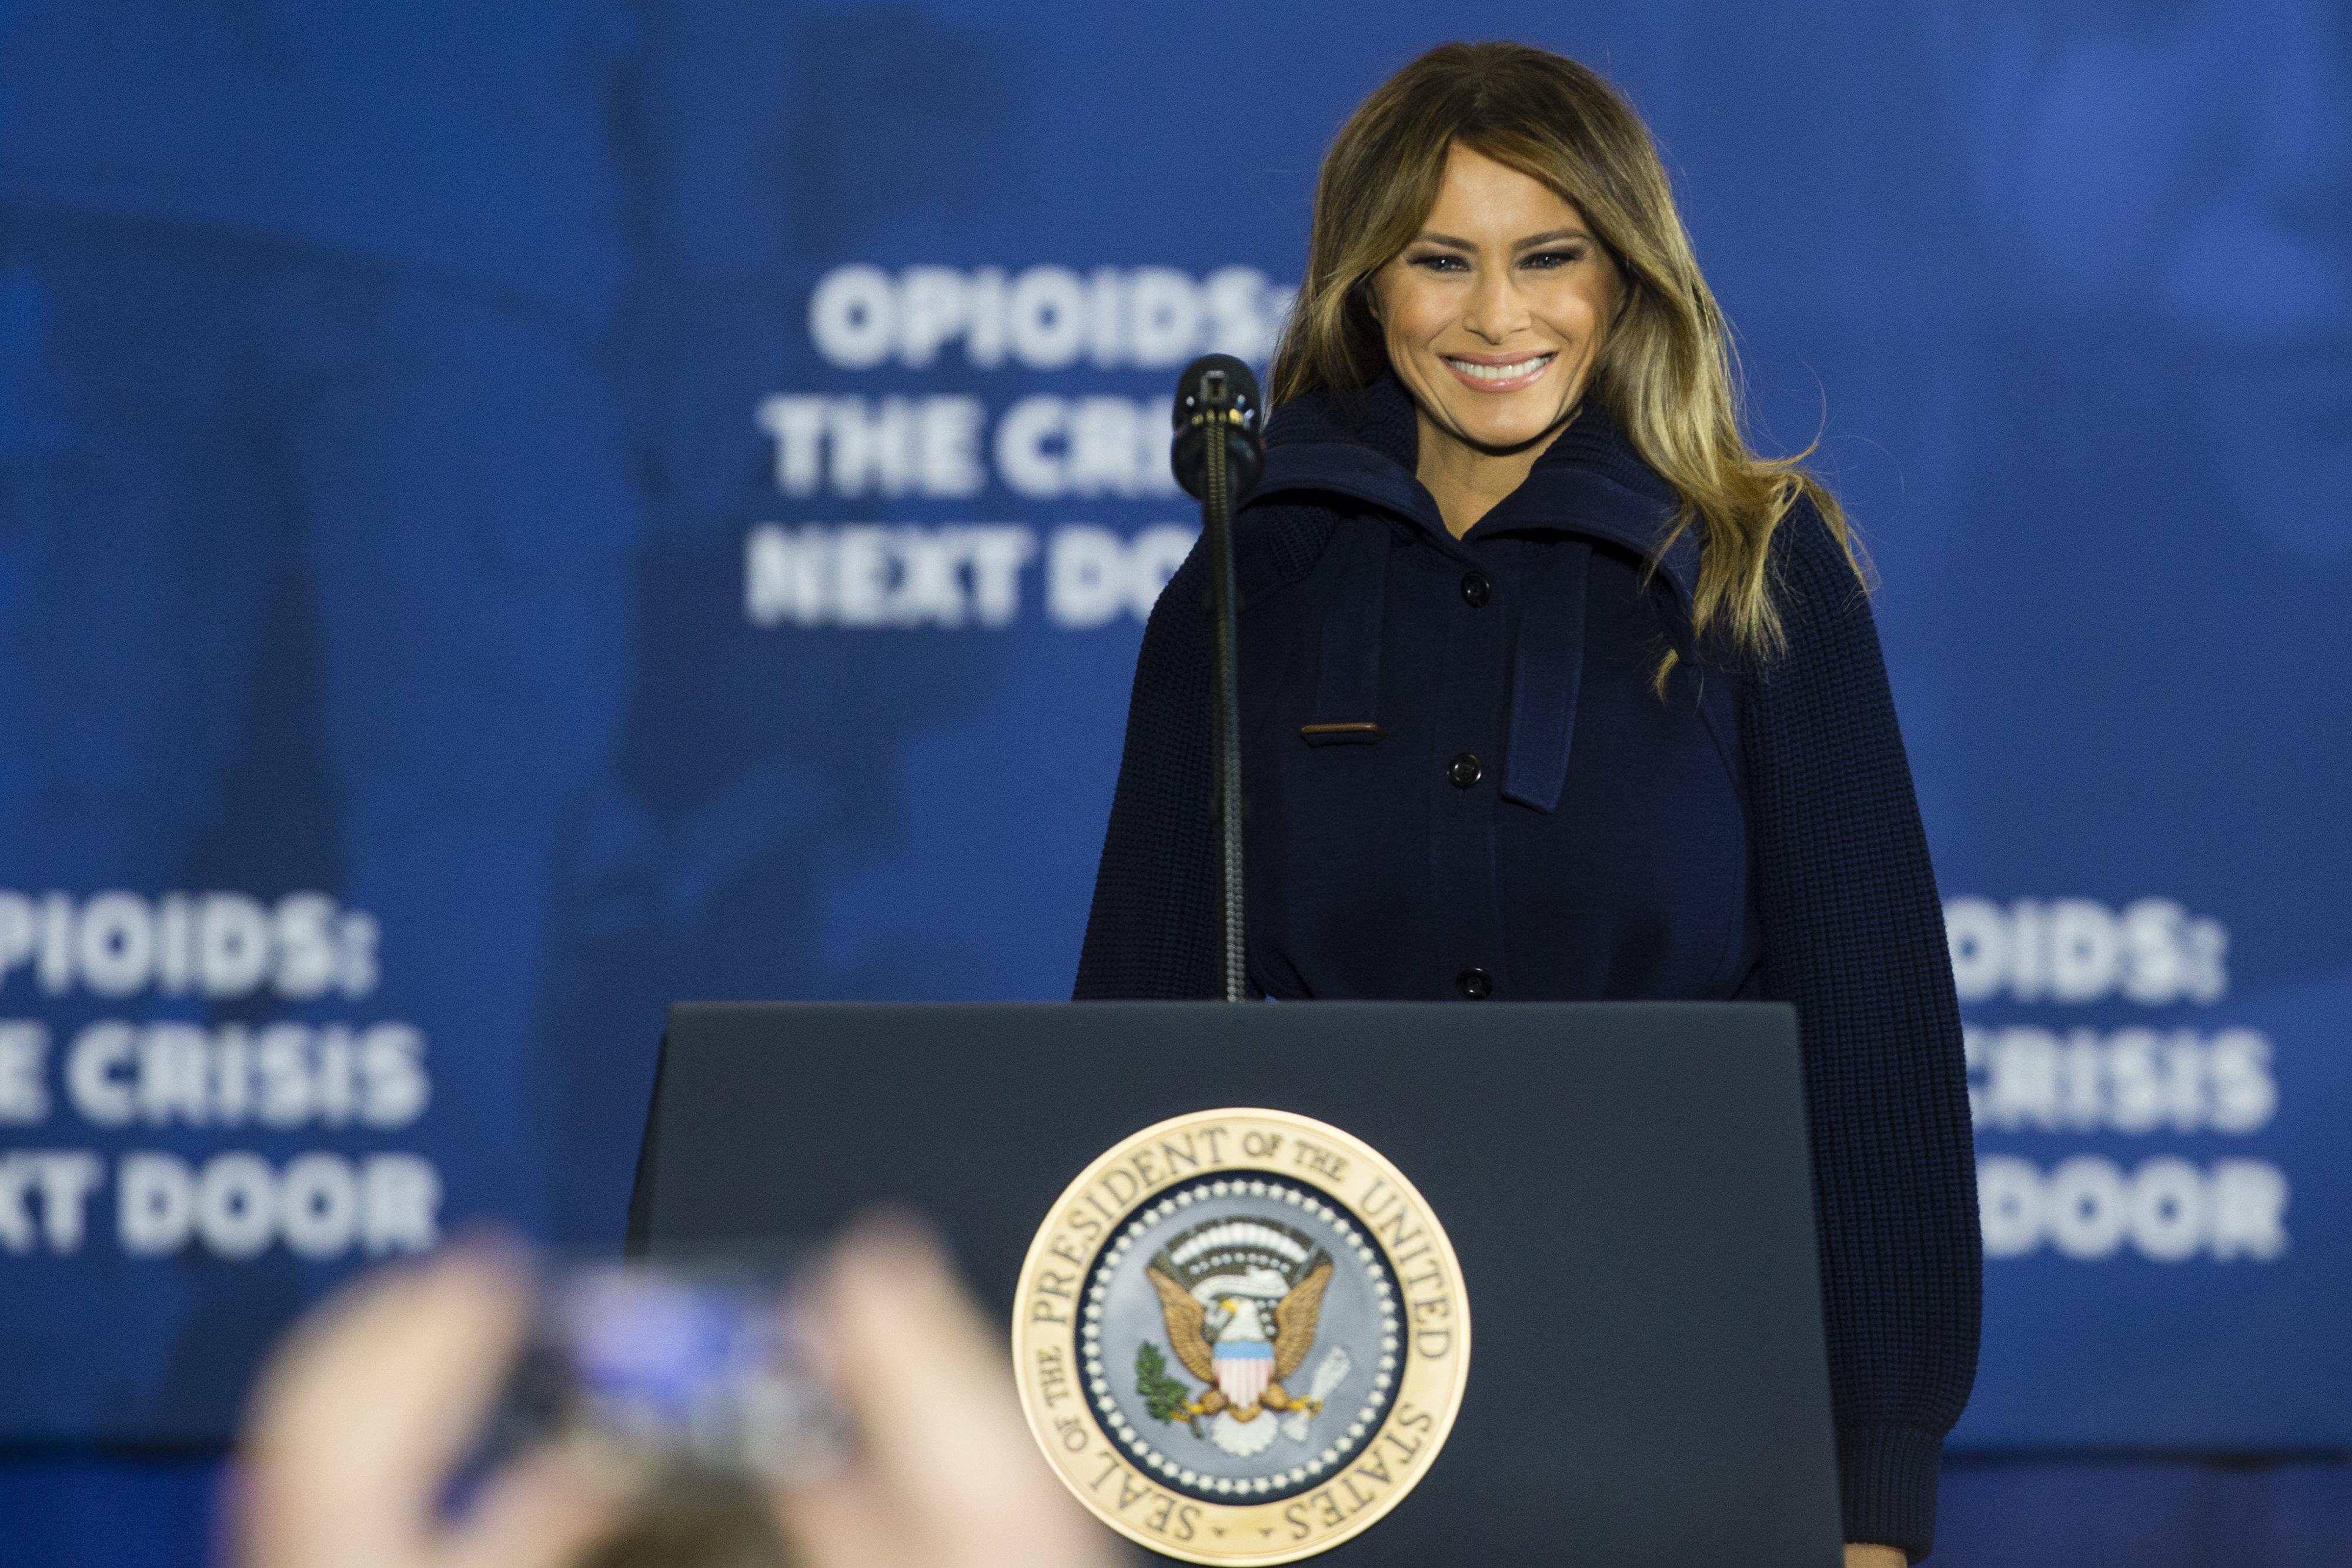 First Lady Melania Trump introduces President Donald Trump for a speech on his administration's plans to combat the opioid crisis at Manchester Community College in Manchester, NH on March 19, 2018.